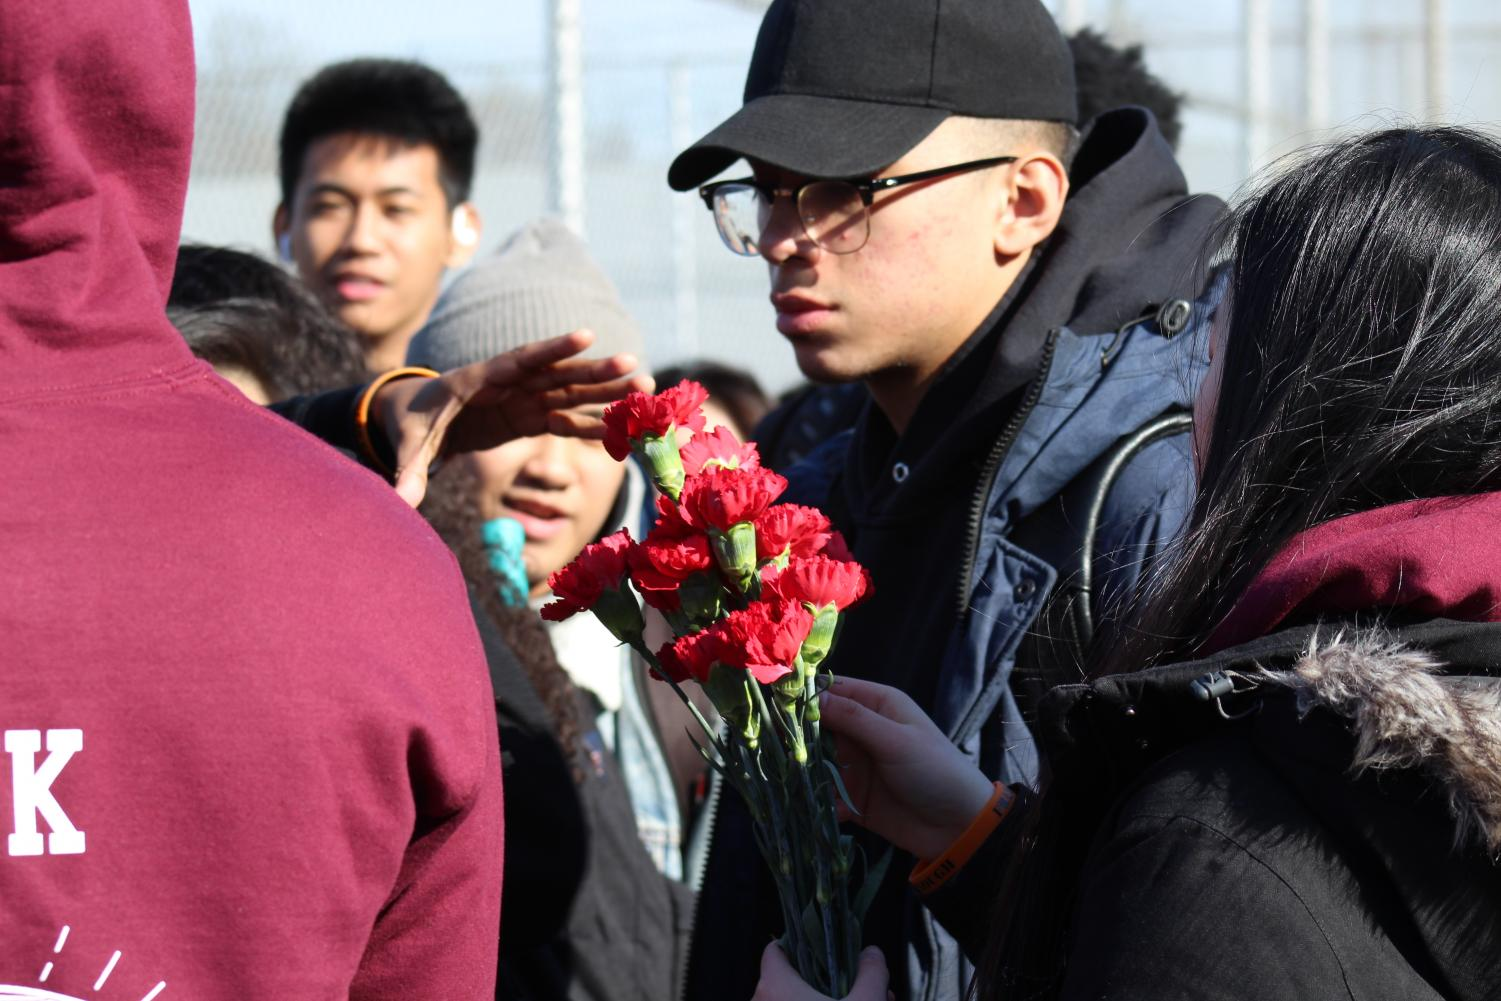 Students+distributed+red+carnations+in+honor+of+the+Parkland+victims.